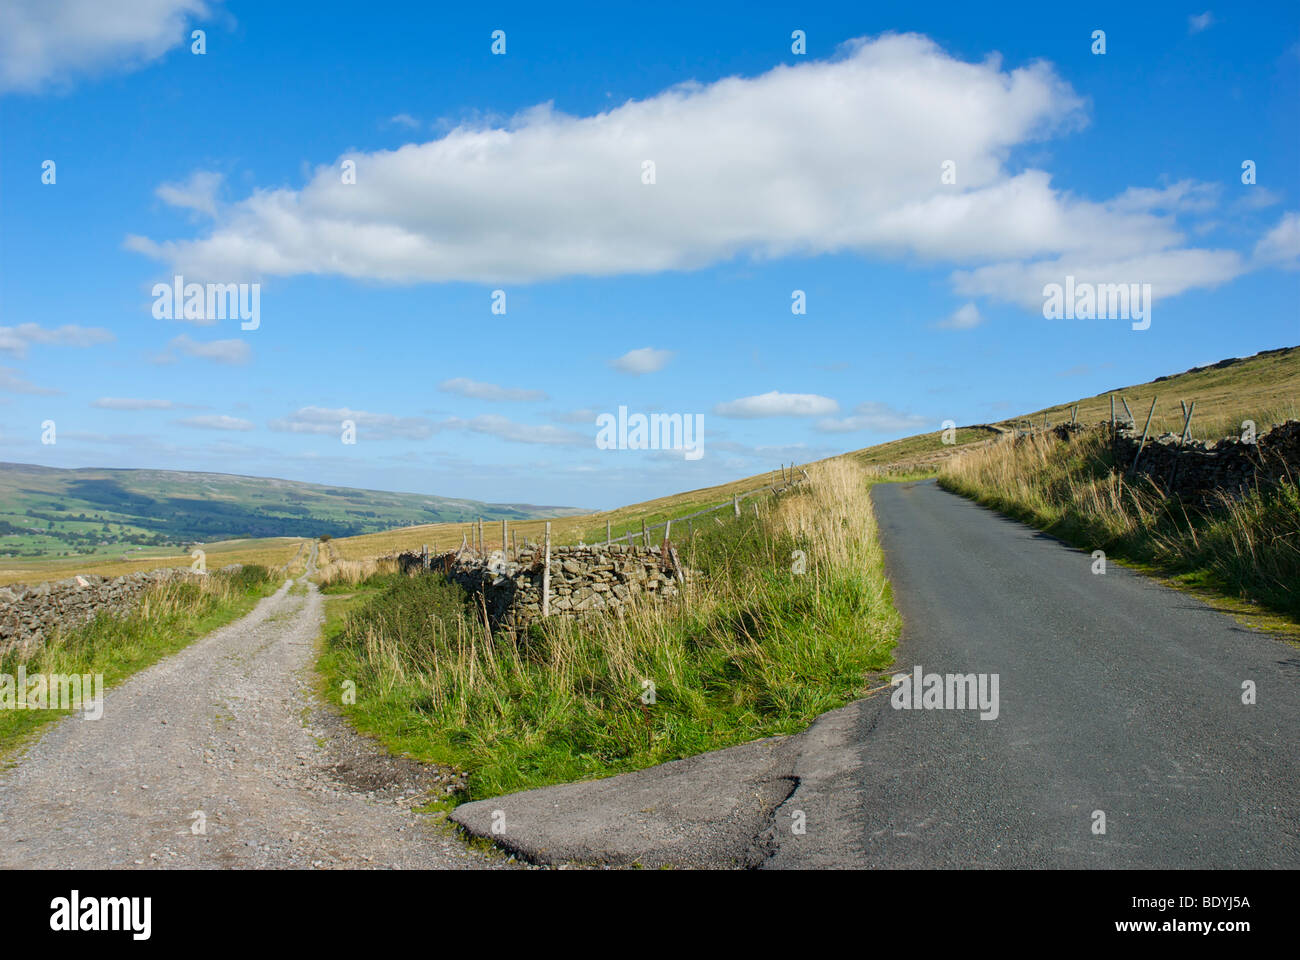 Cam High Road (Roman) on left, modern road on right. Wensleydale, Yorkshire Dales National Park, England UK Stock Photo